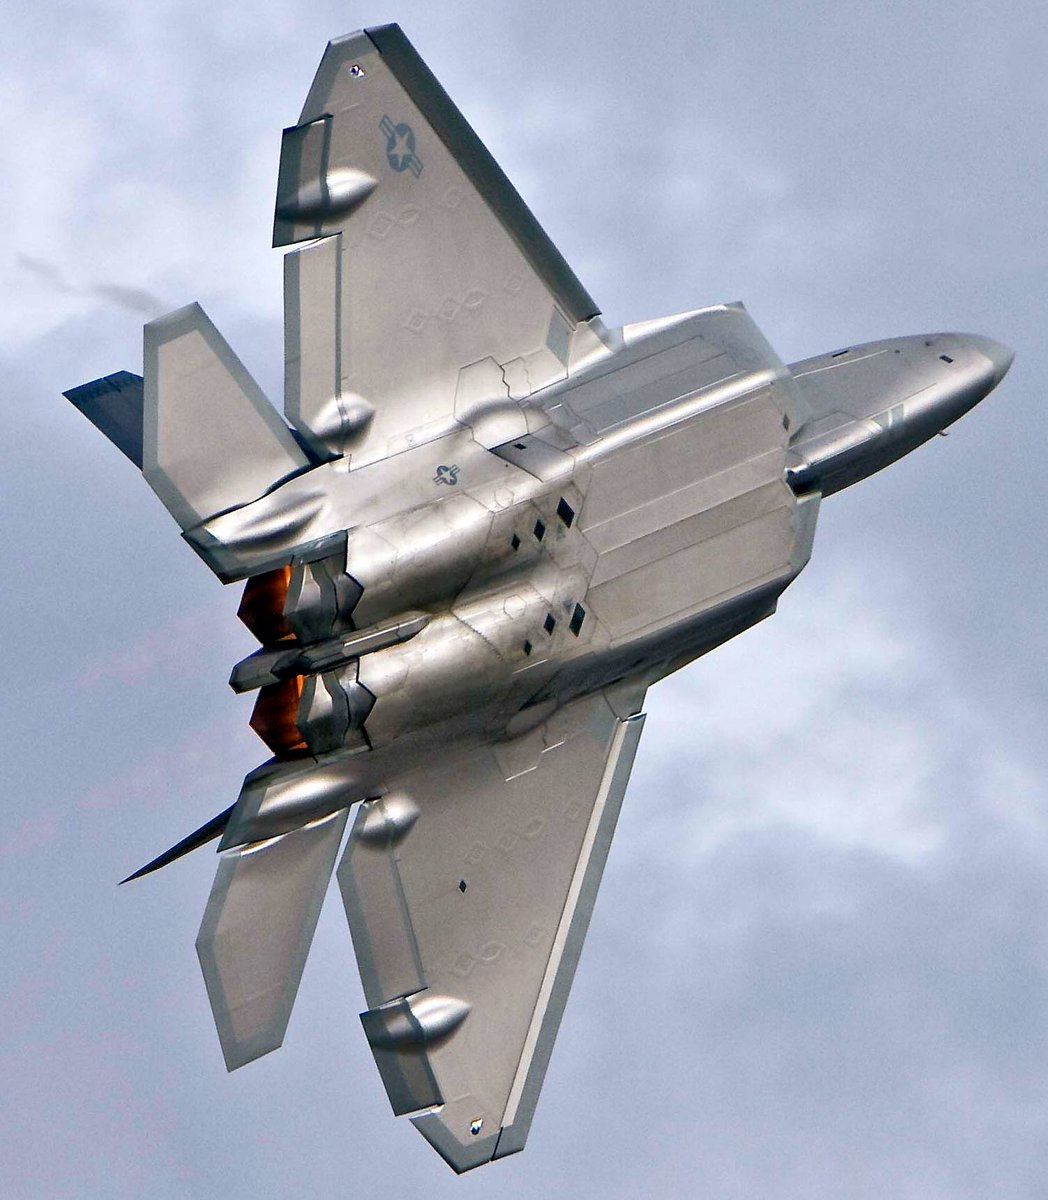 According to best estimates, the F-22 Raptor has a radar cross section of less than .0001 square meters - less than that of a hummingbird!   (Exact RCS is classified) #F22 #USAF #MilitaryMachine  What's your favorite part about the F-22?